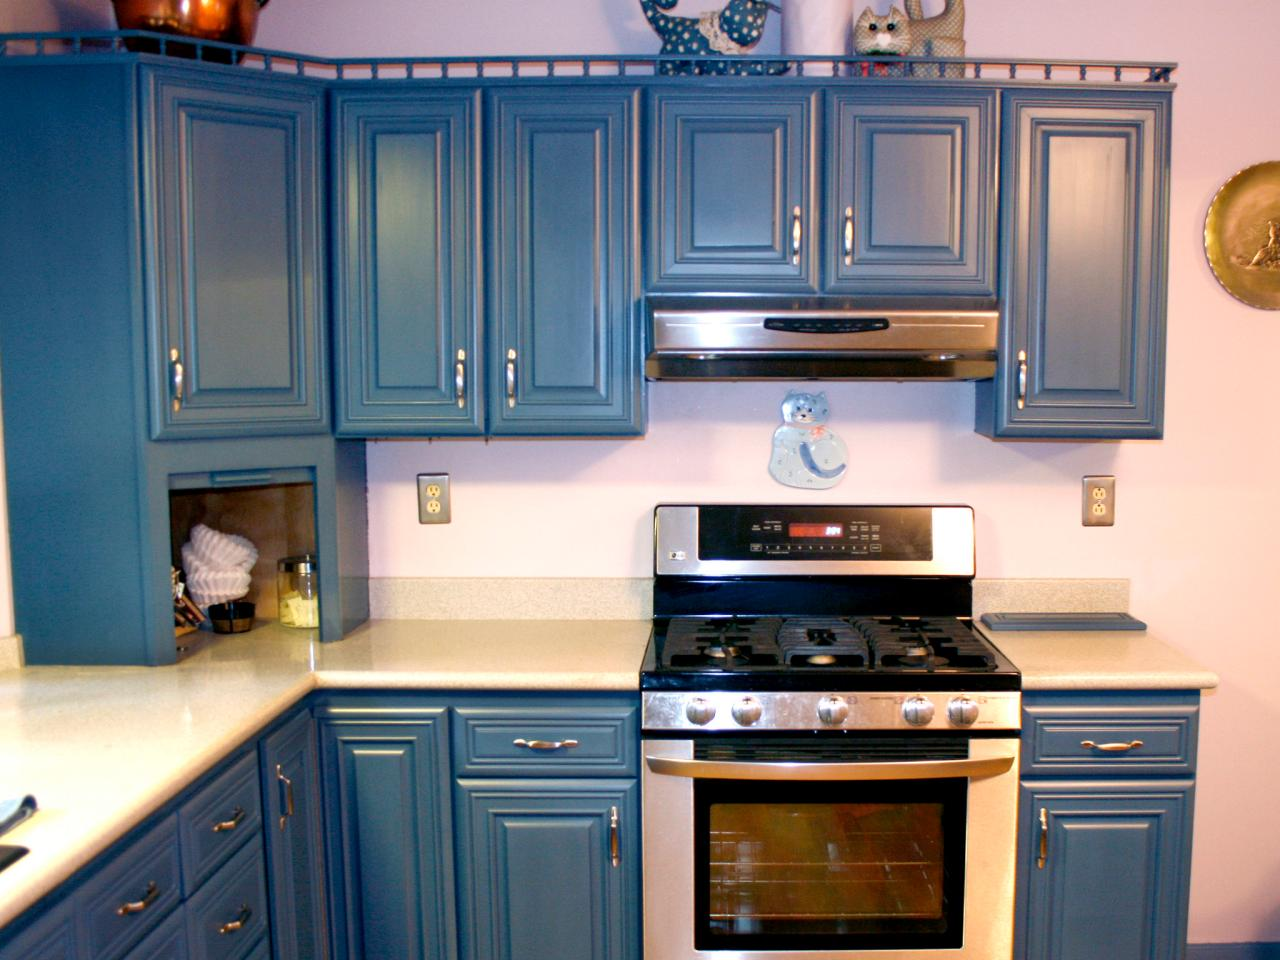 How to Spray Paint Cabinets2